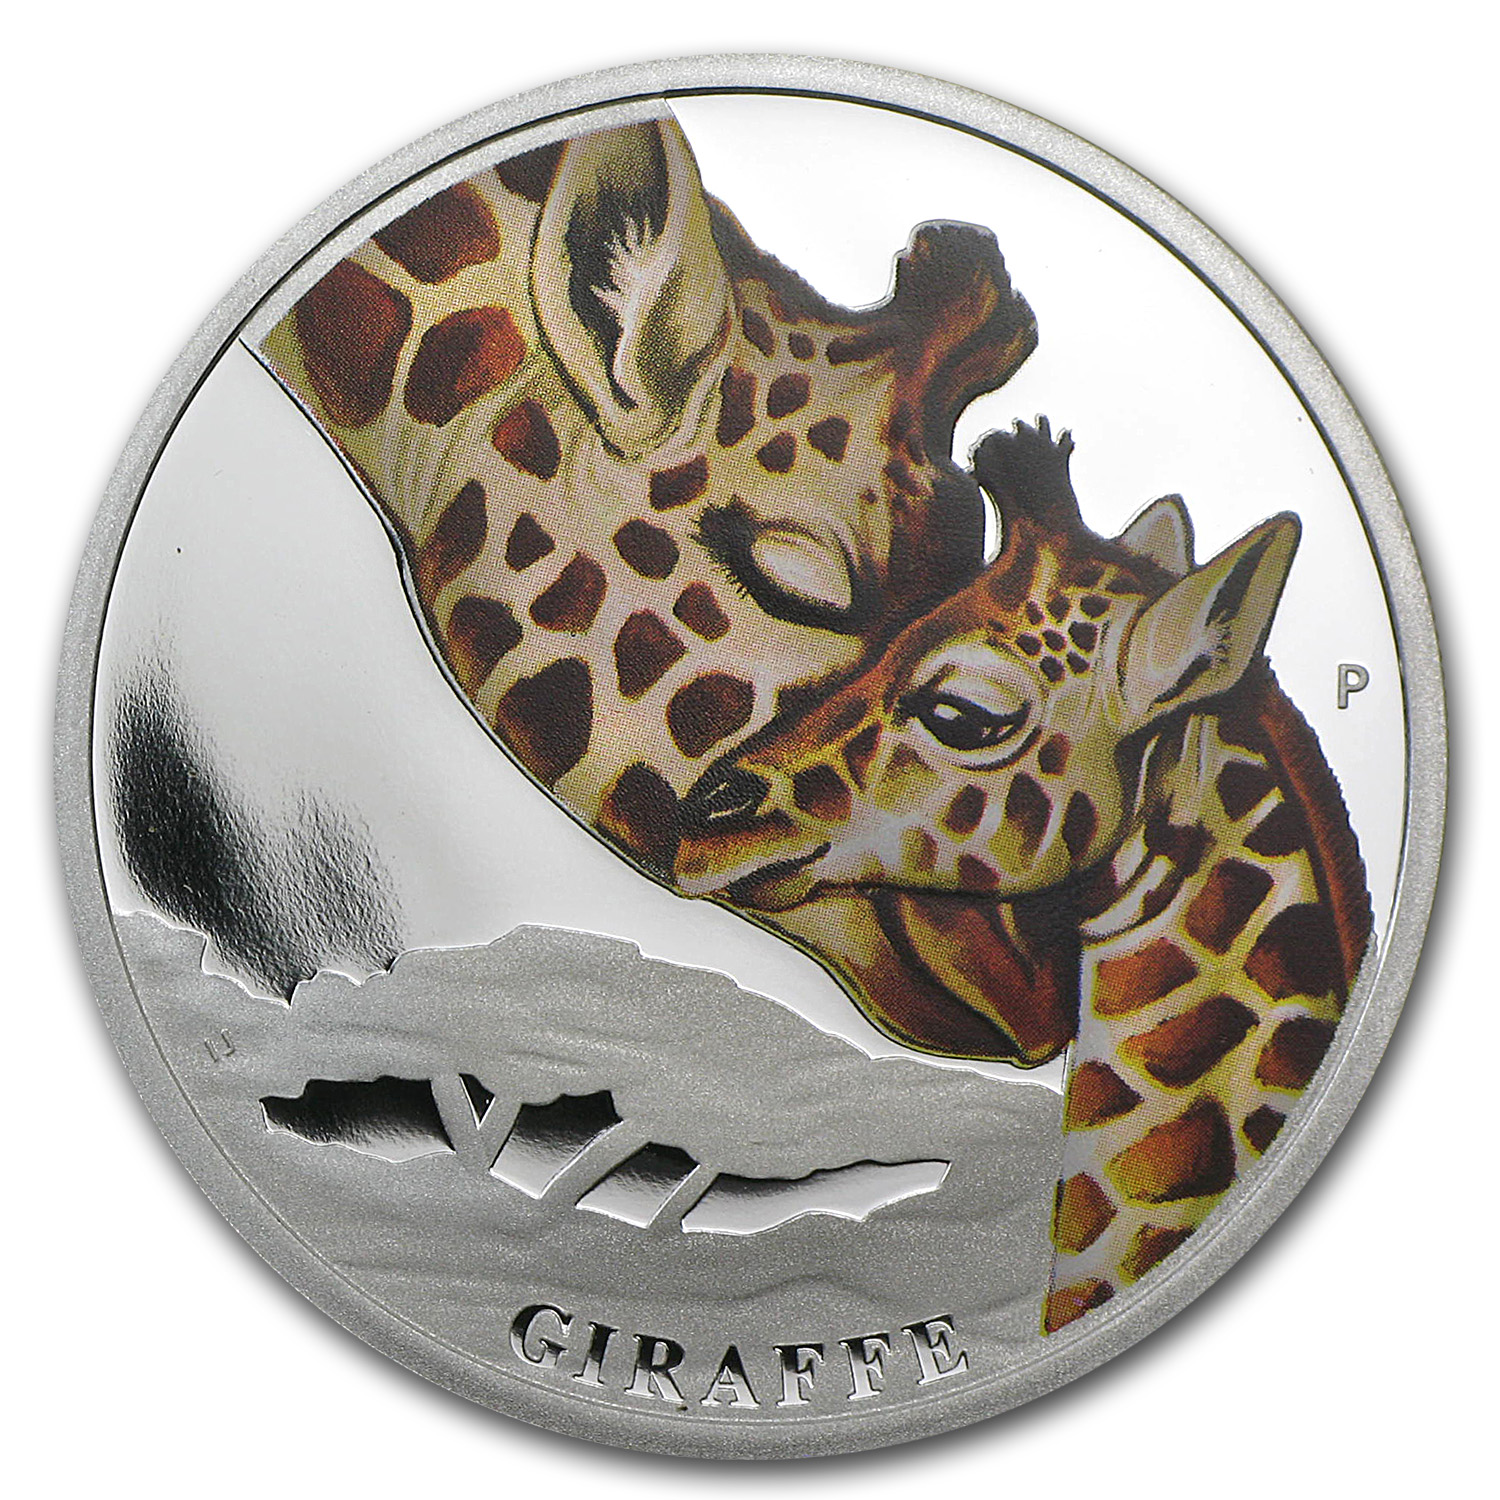 2014 Australia 1/2 oz Silver Mother's Love Proof (Giraffe)